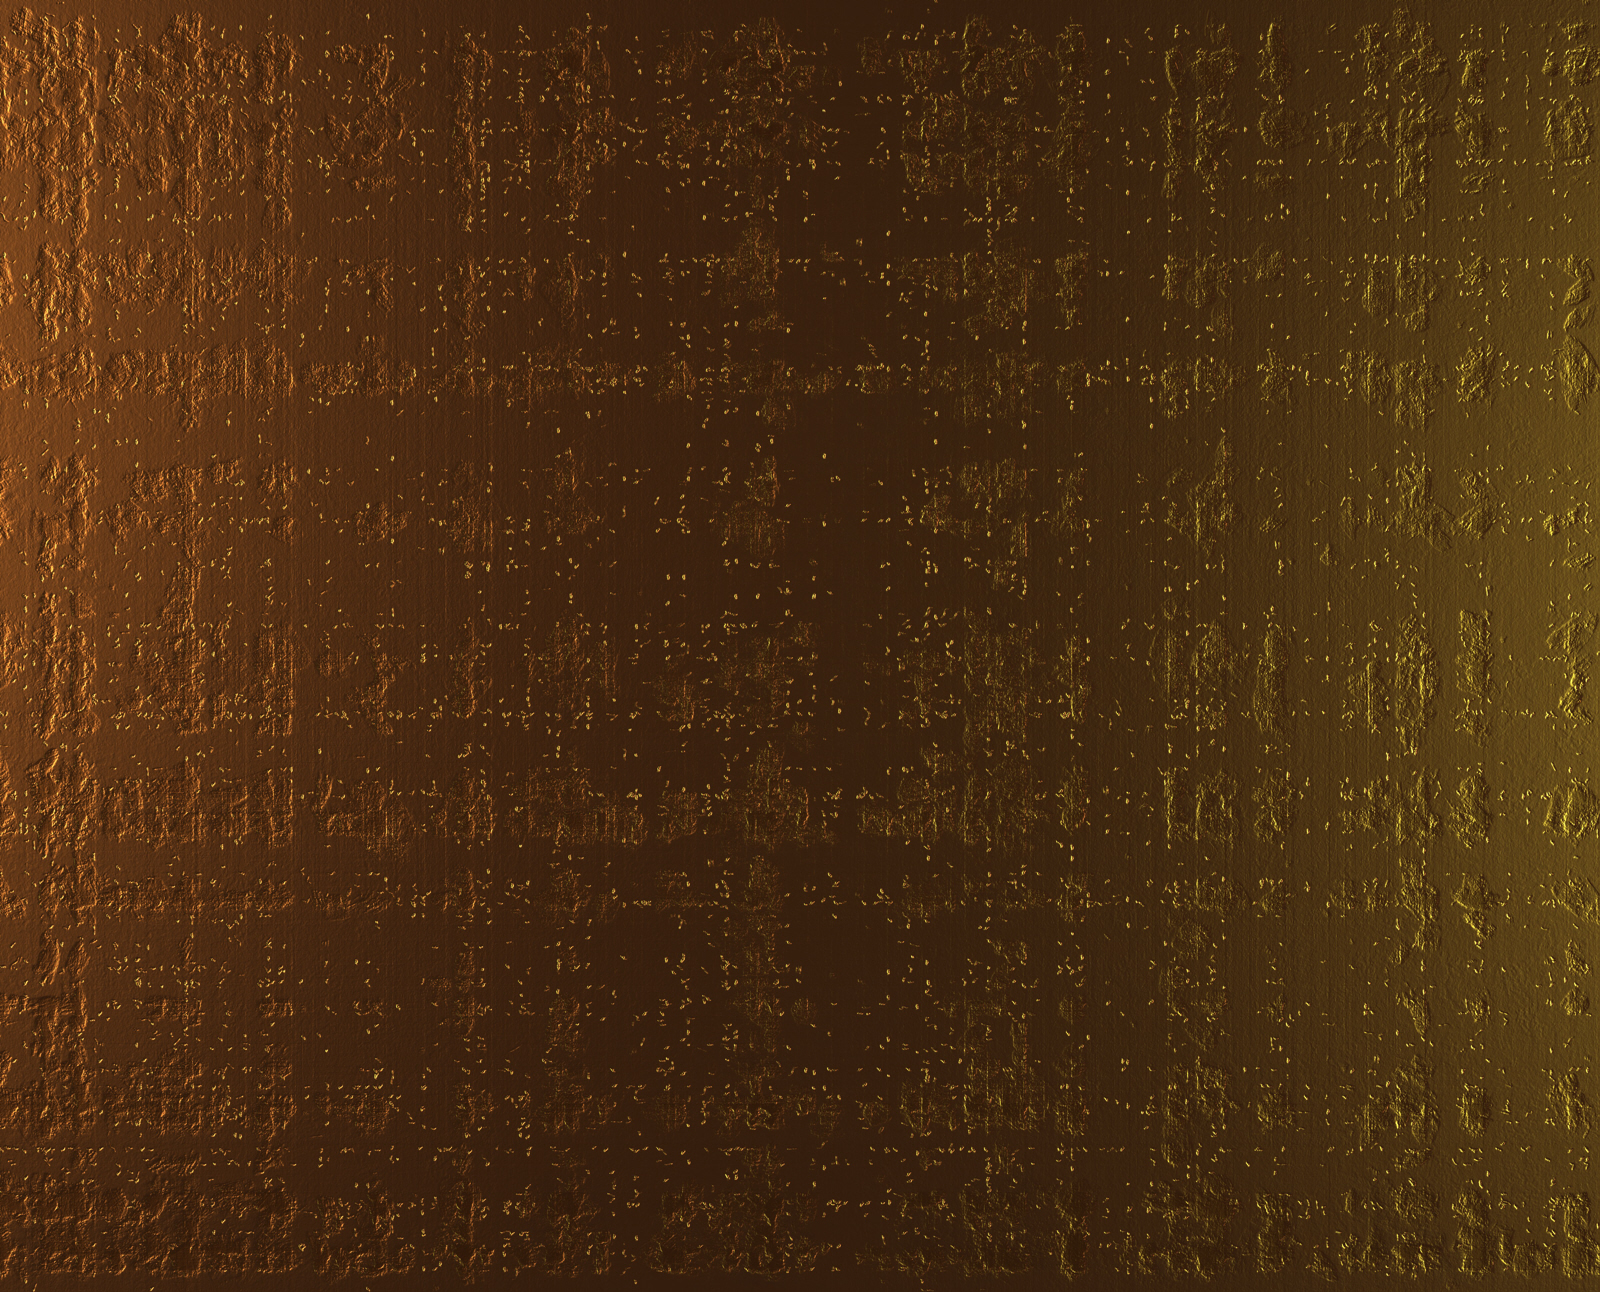 Free Stock Photo 9602 gold texture pattern   freeimageslive